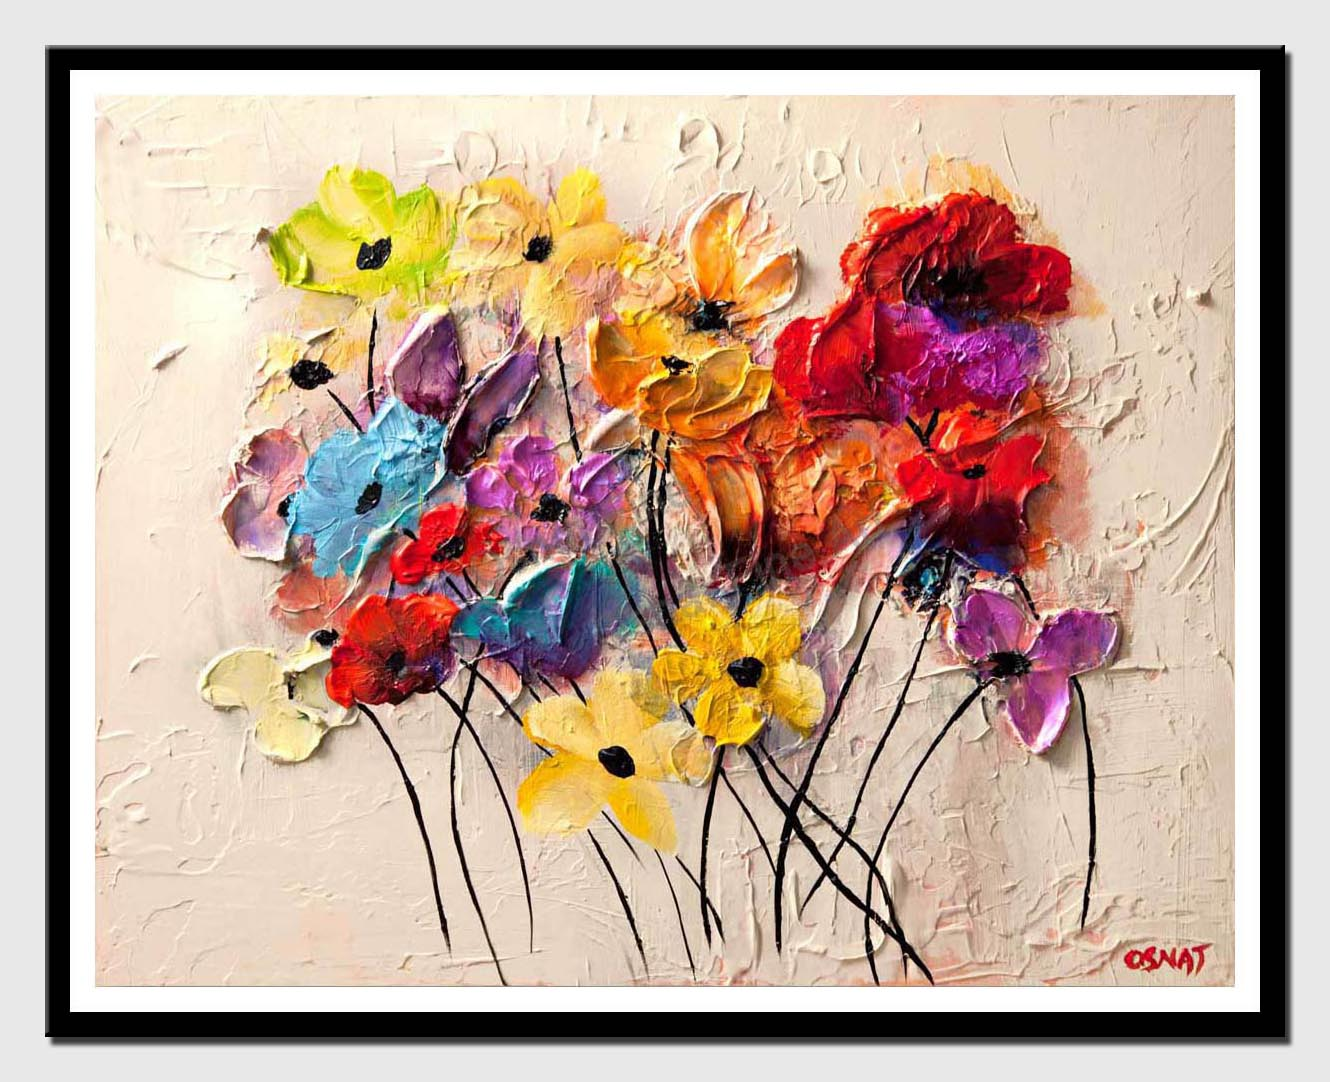 canvas print of colorful flowers textured abstract painting